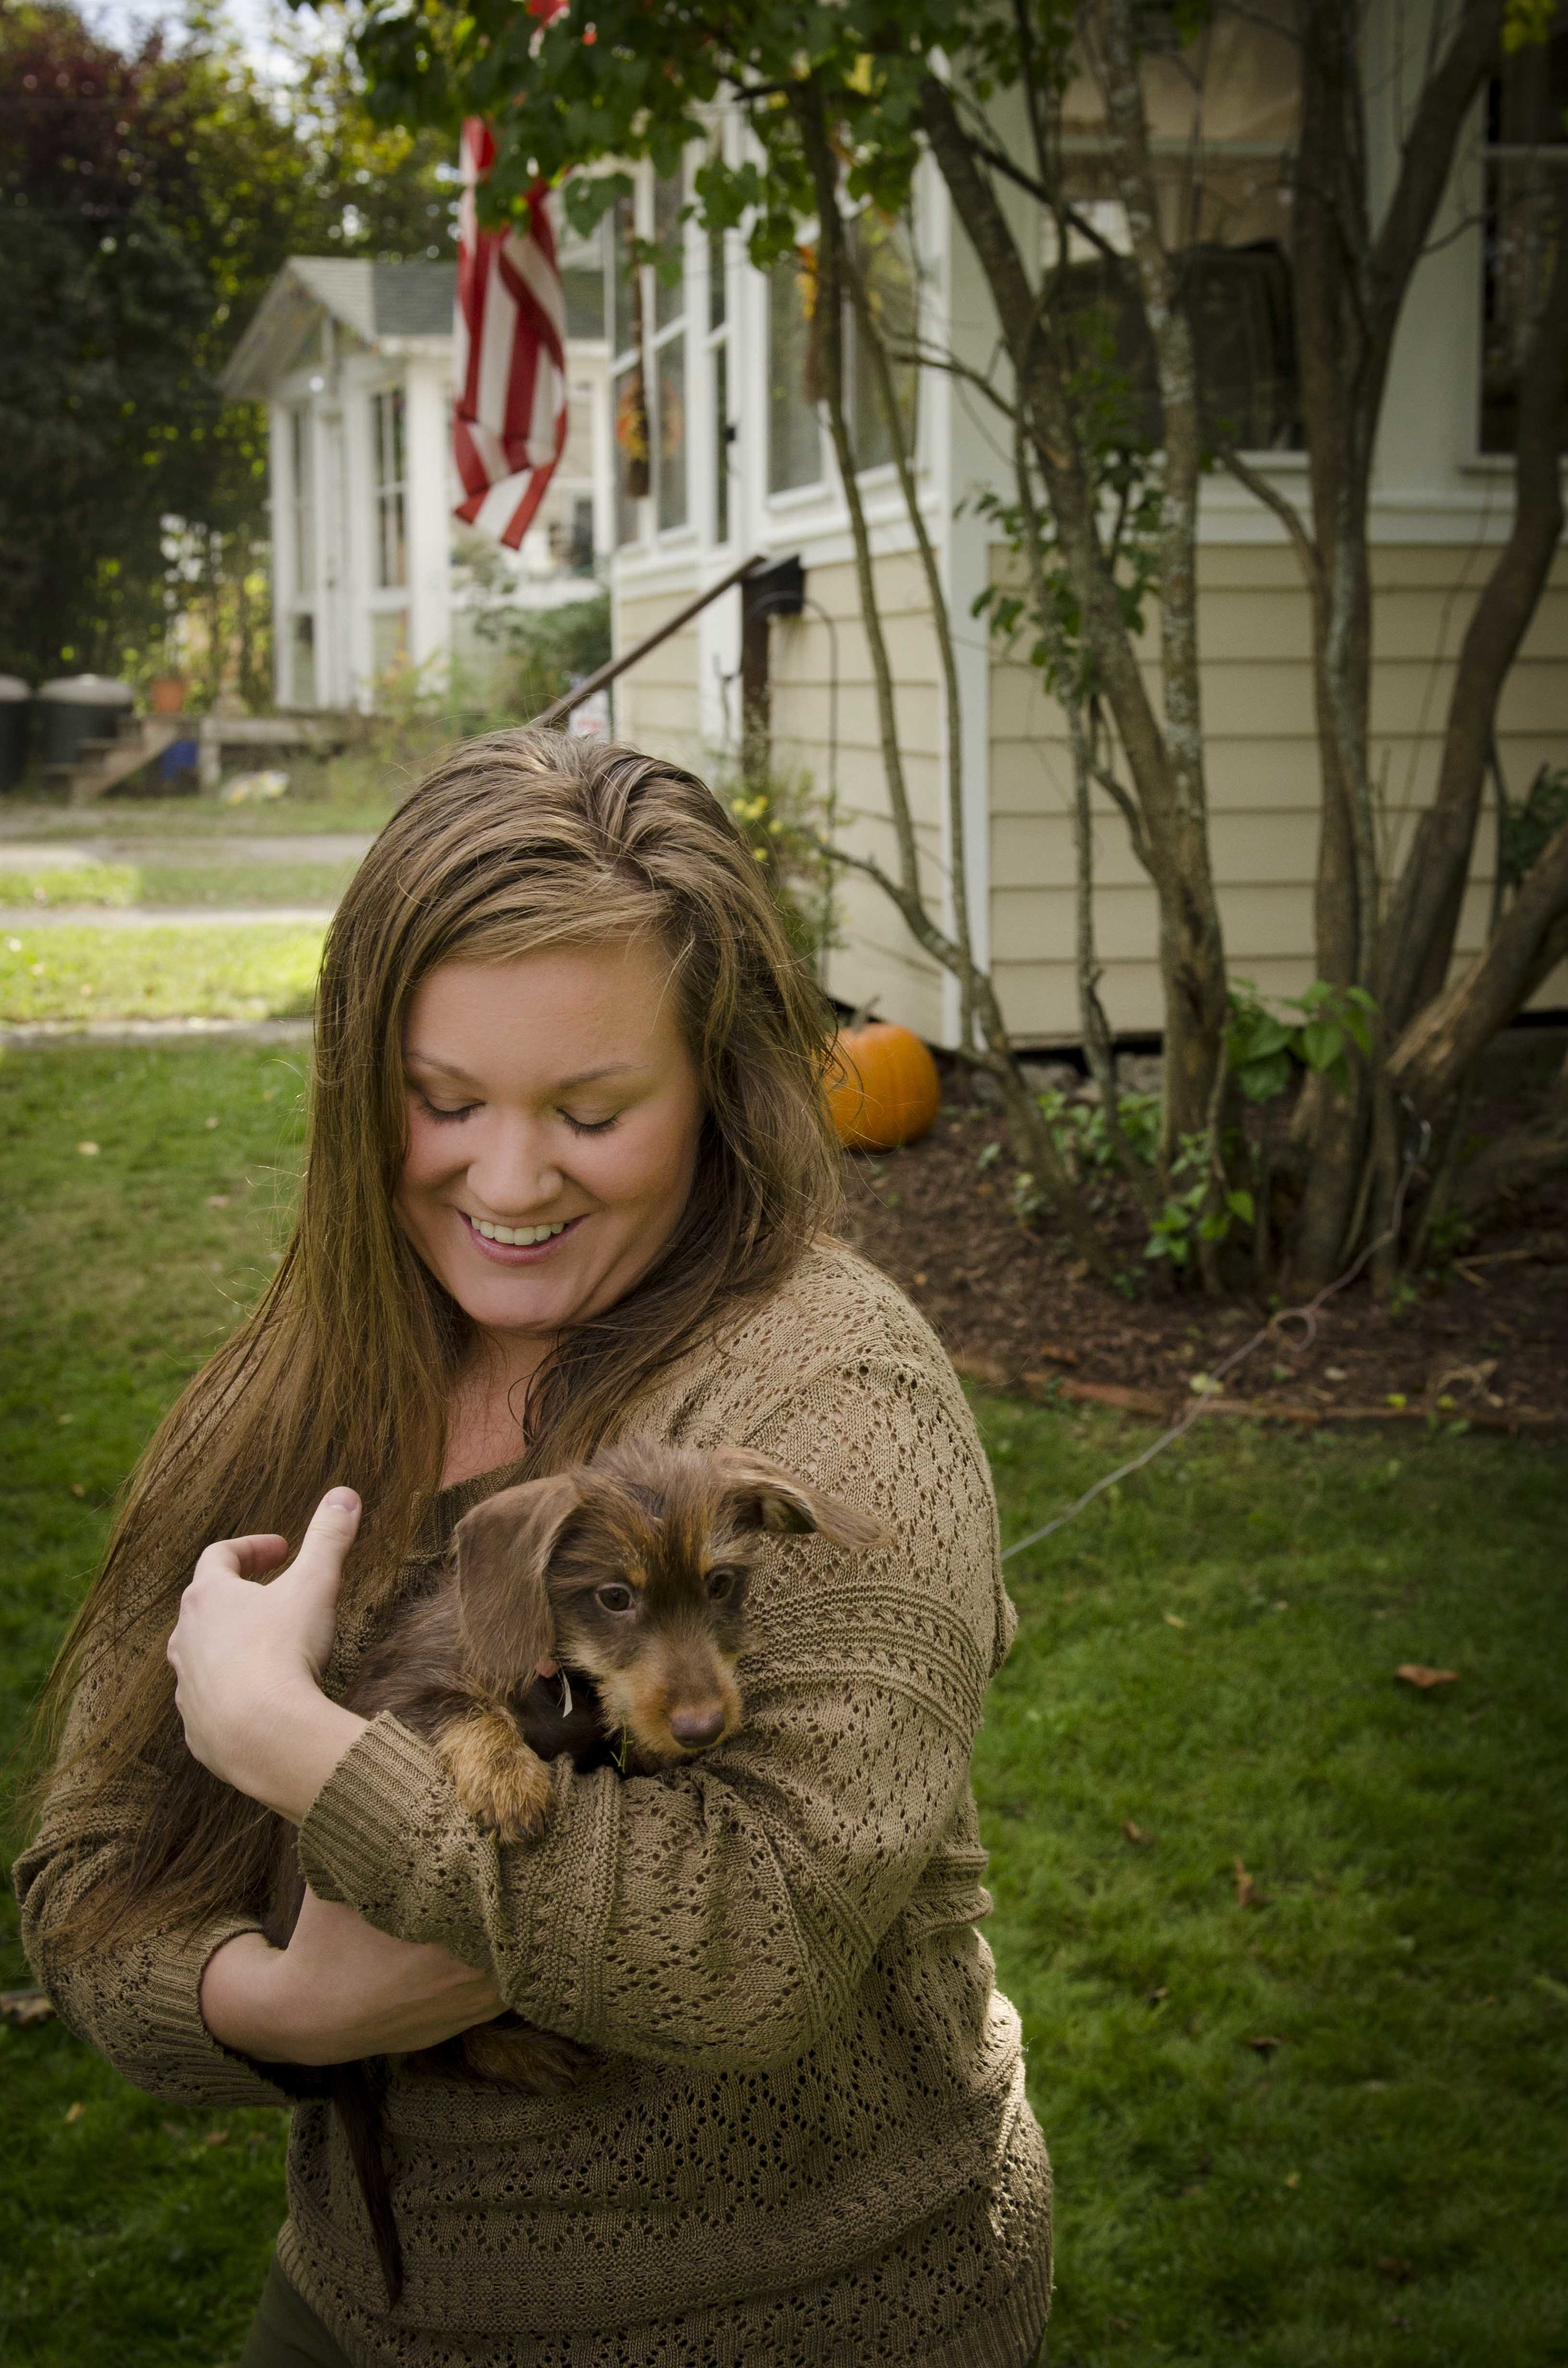 My wife holds a miniature long haired dachshund